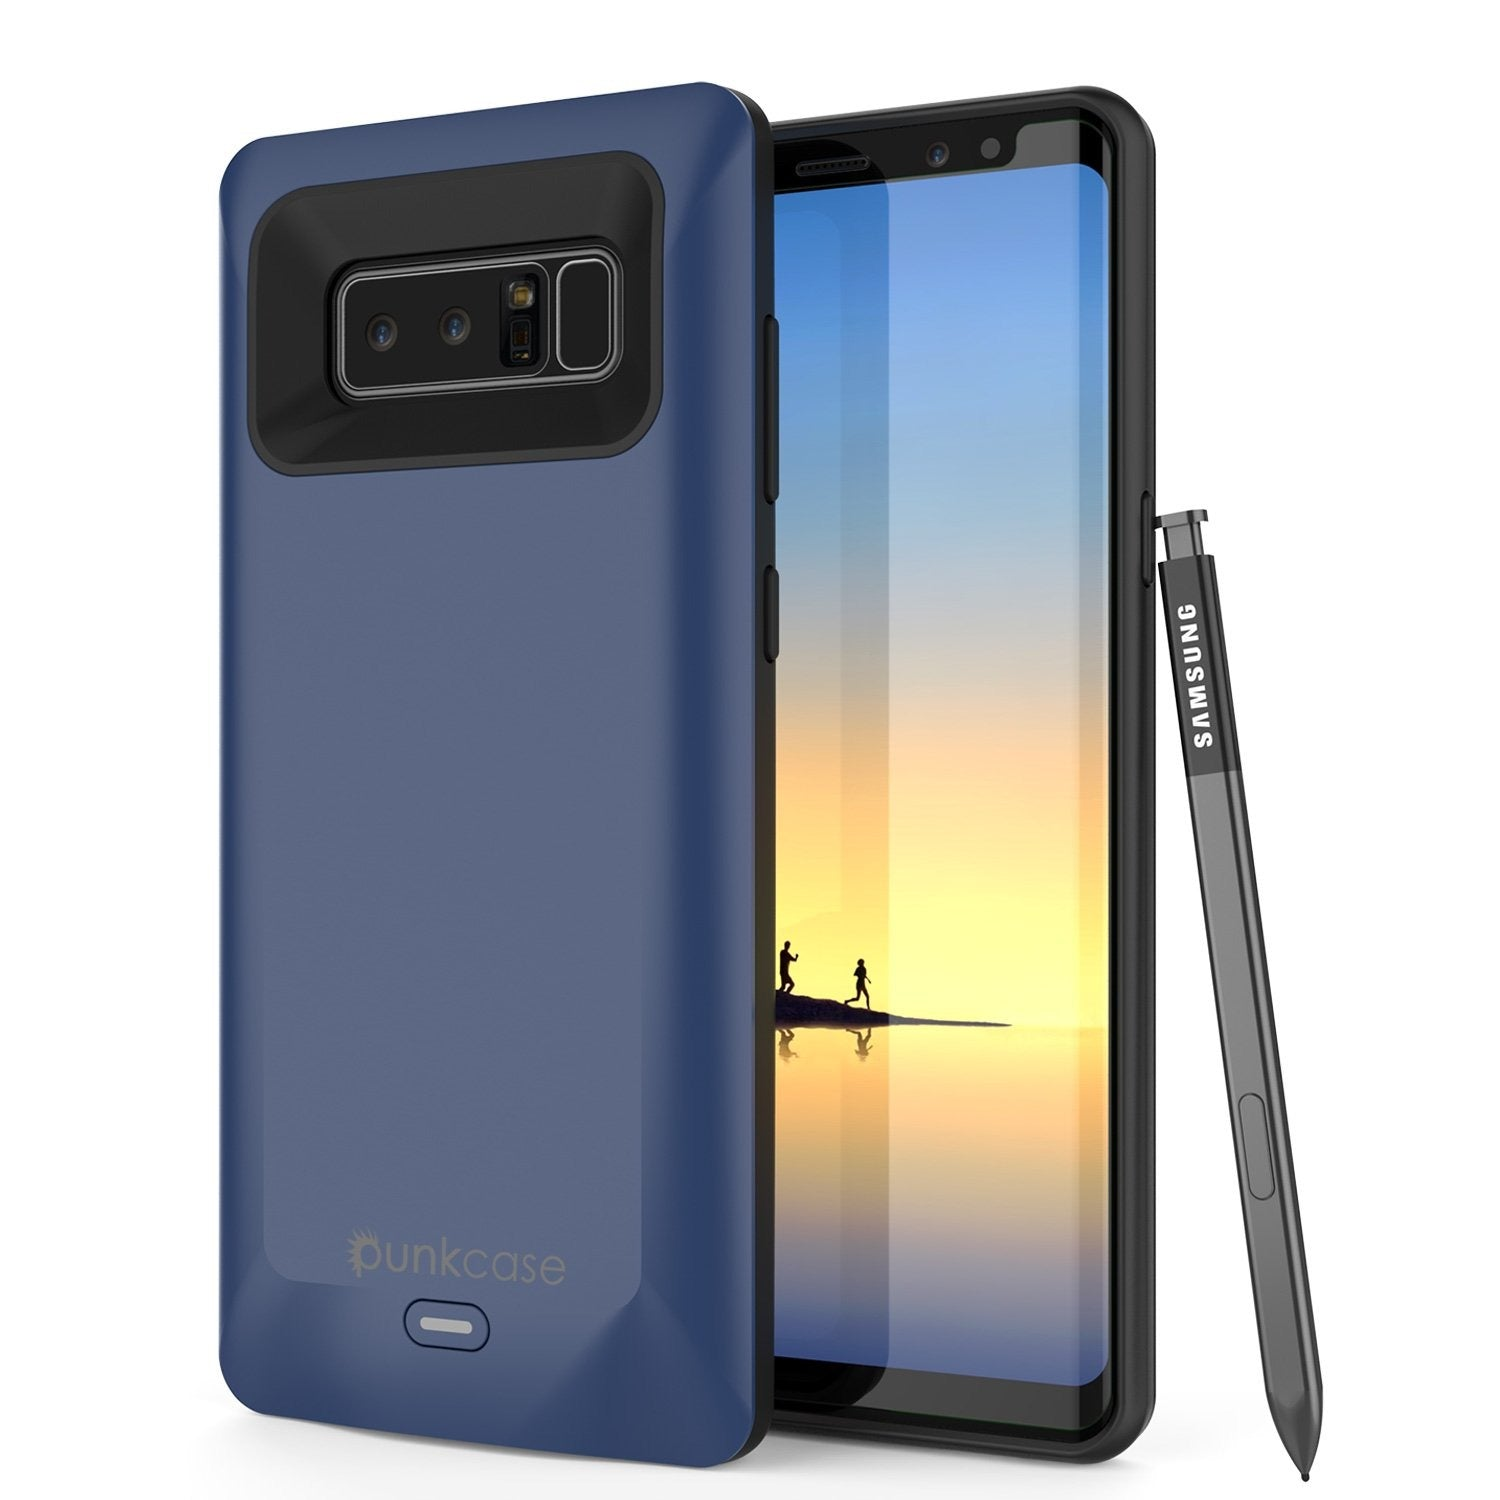 Galaxy Note 8 Battery Case, Punkcase 5000mAH Charger Case W/ Screen Protector | Integrated USB Port | IntelSwitch [Blue]